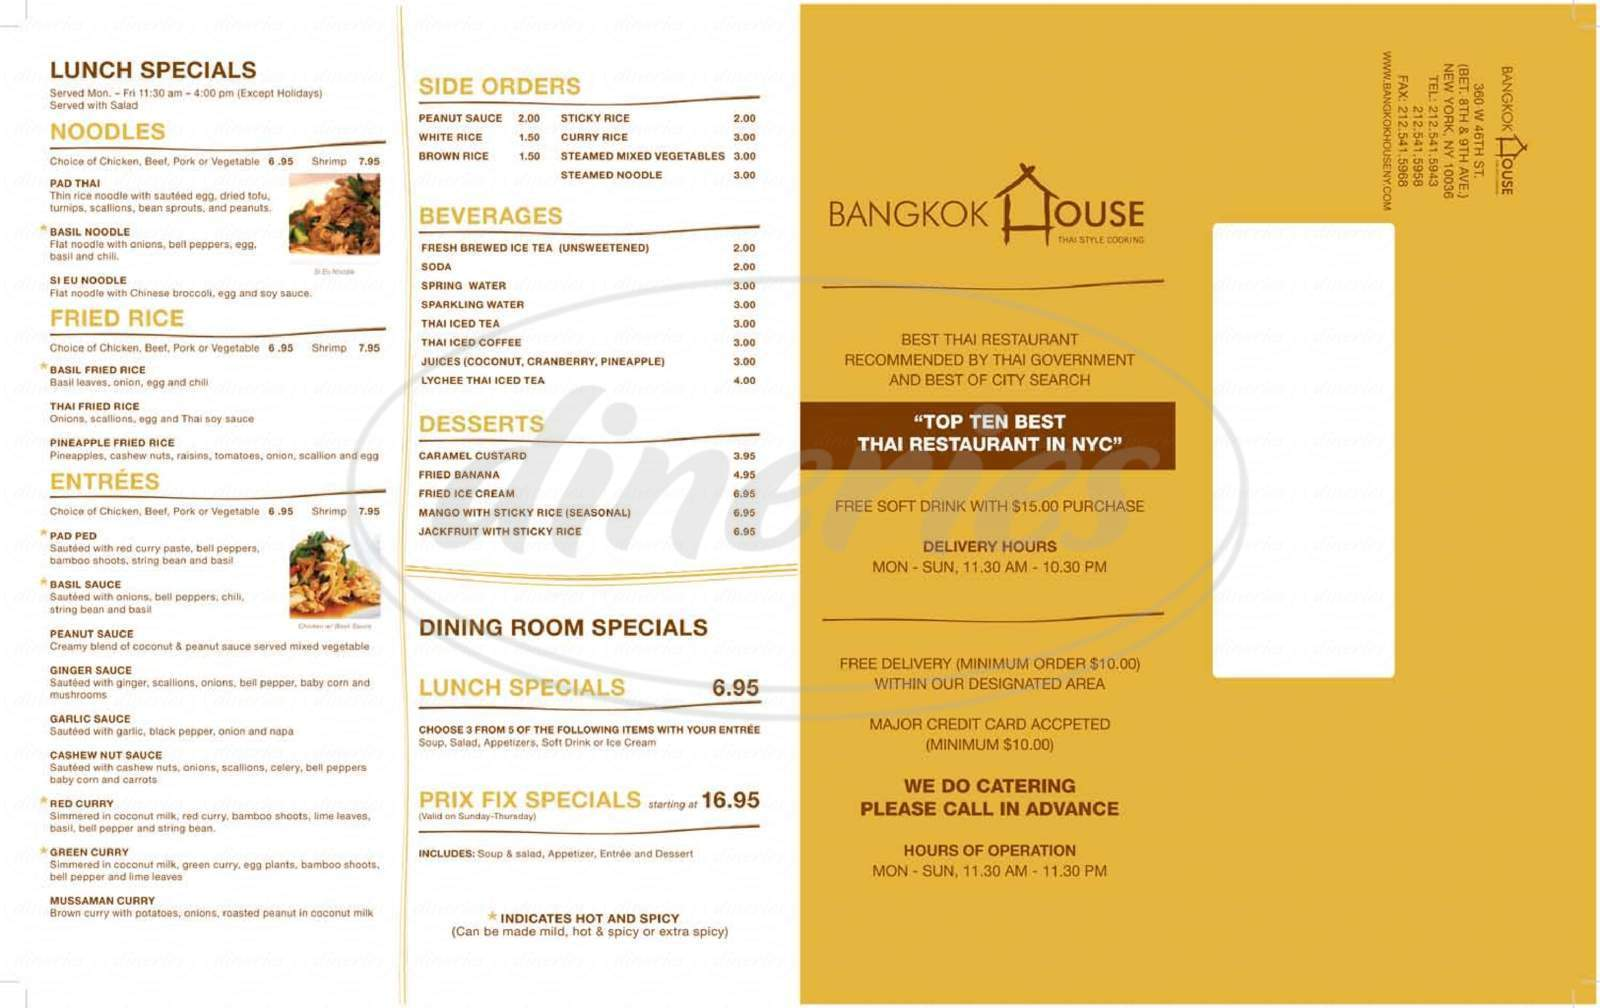 menu for Bangkok House